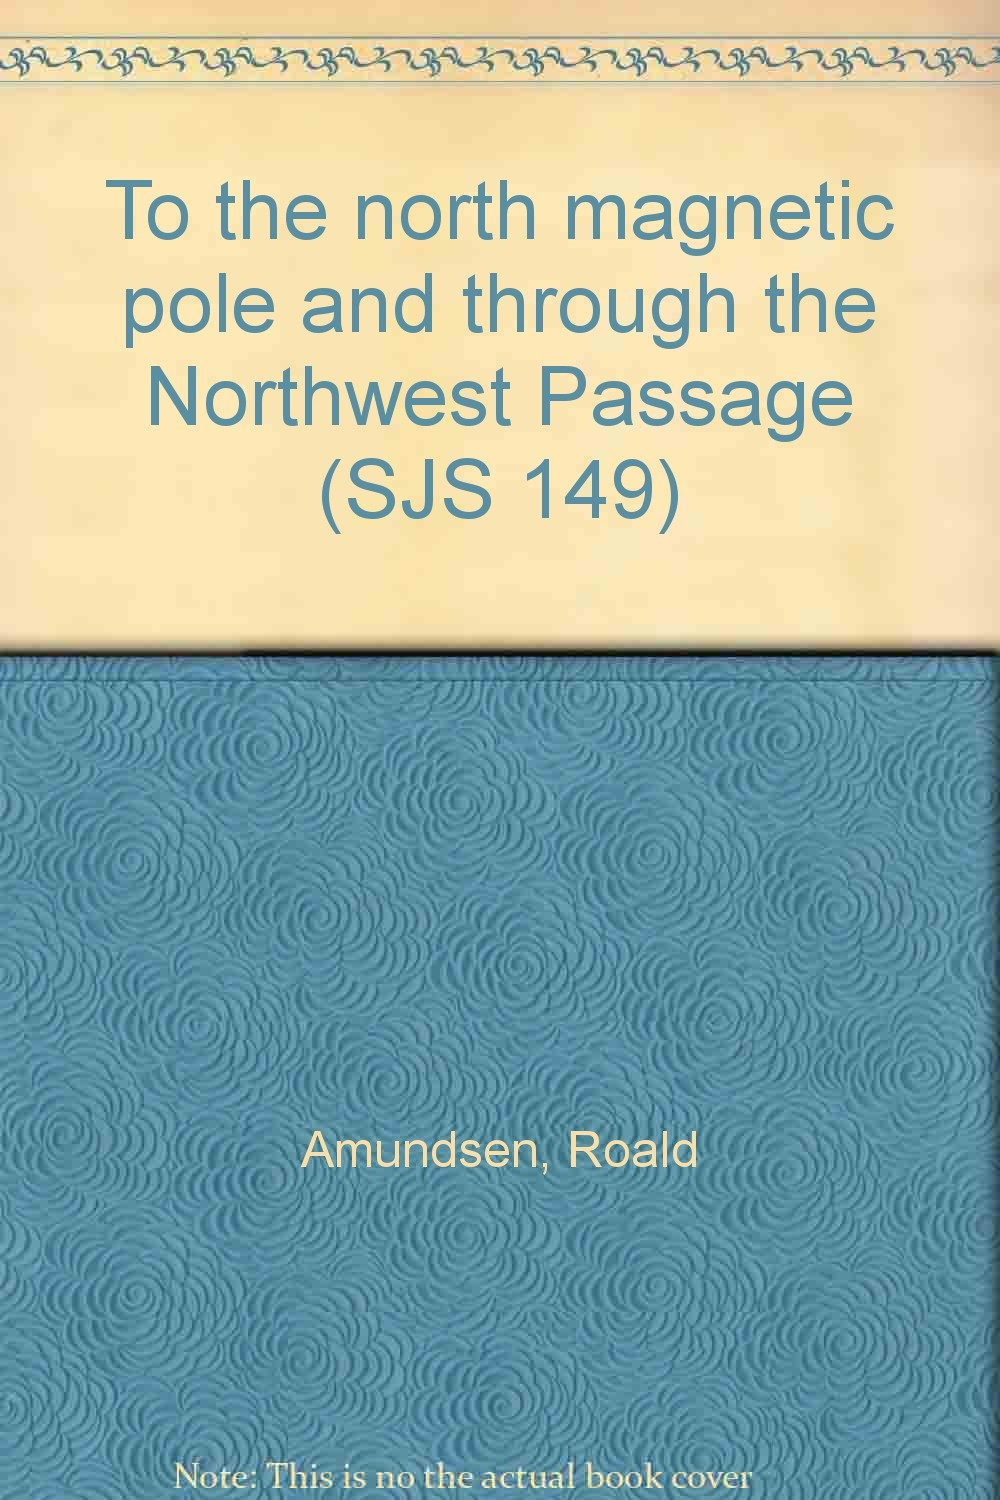 To the north magnetic pole and through the Northwest Passage (SJS 149)